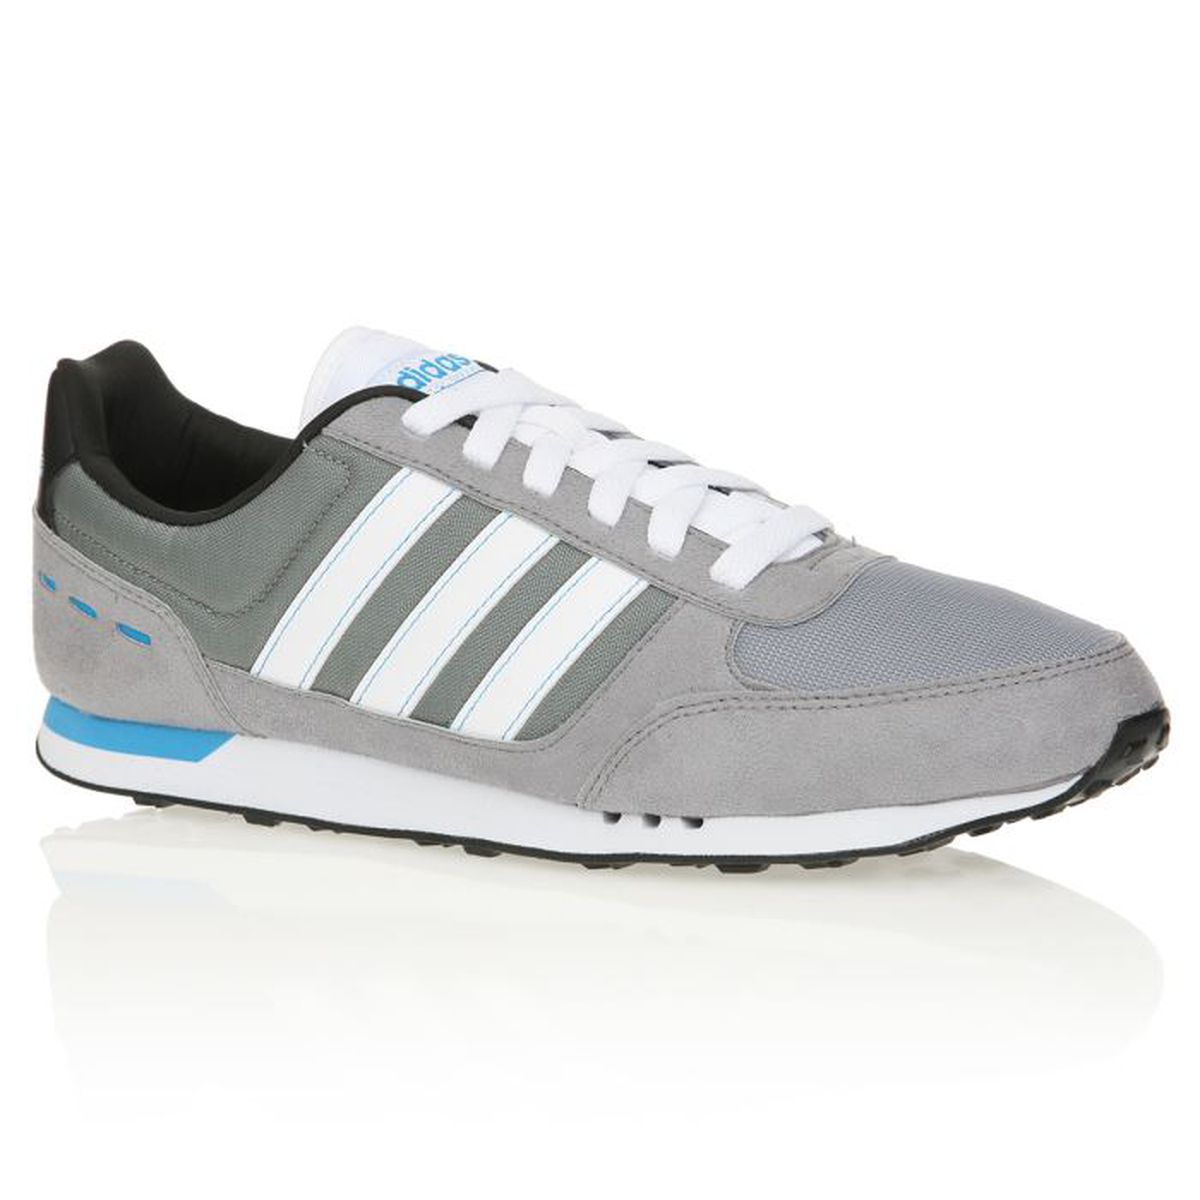 Chaussure Adidas Neo City Racer